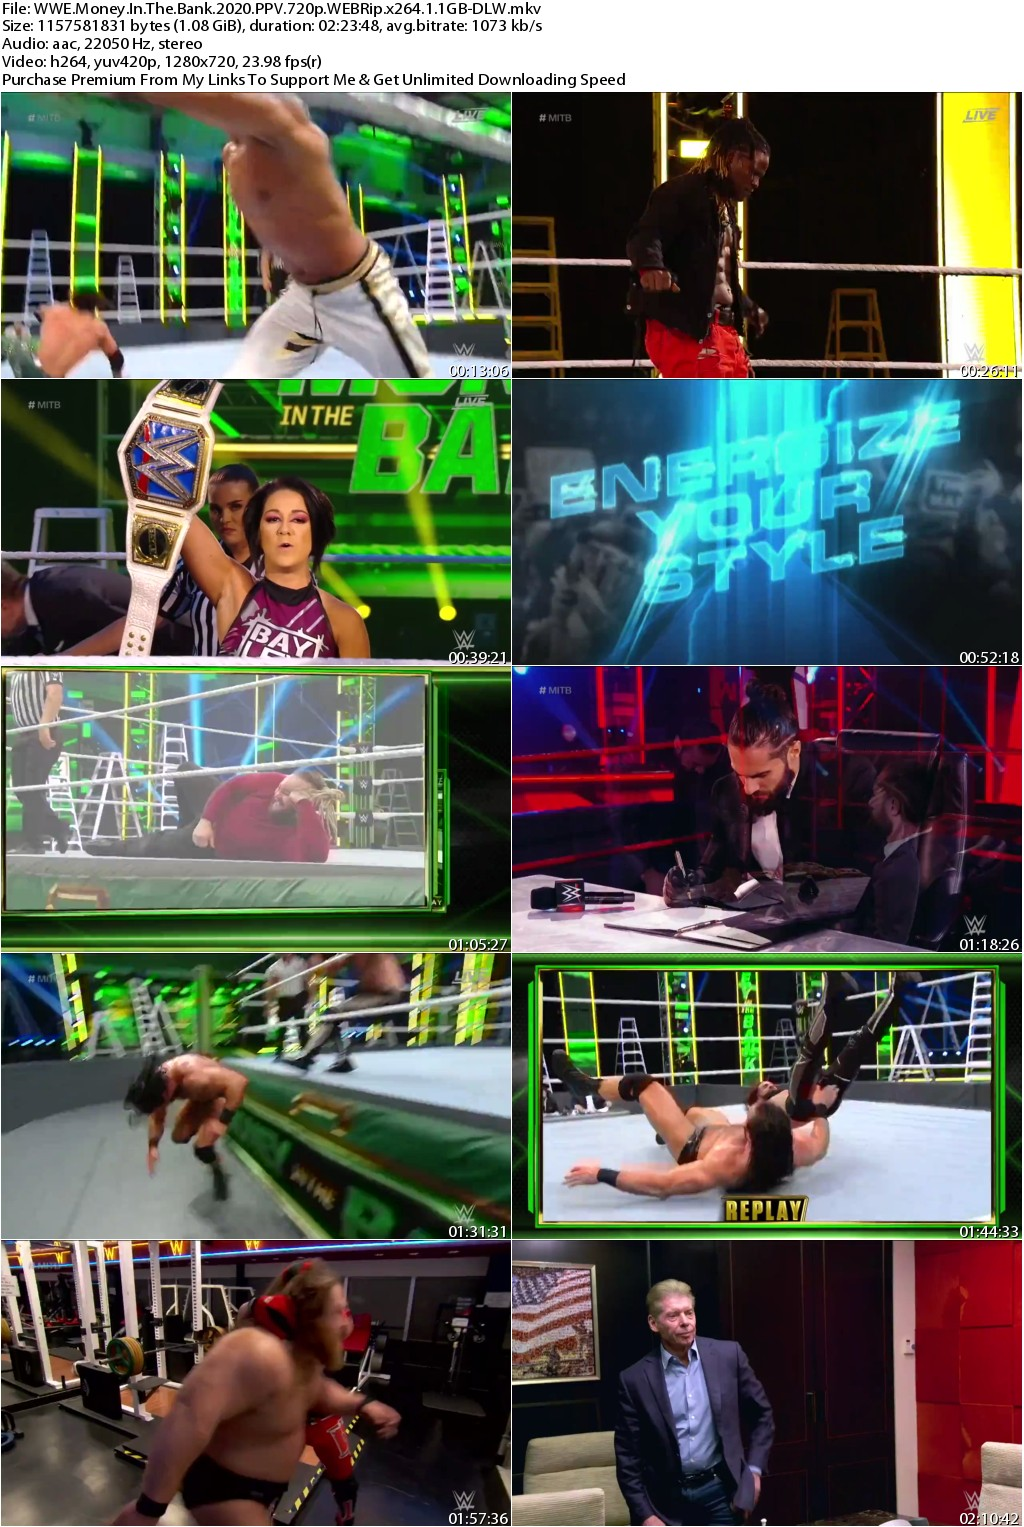 WWE Money In The Bank 2020 PPV 720p WEBRip x264 1 1GB-DLW